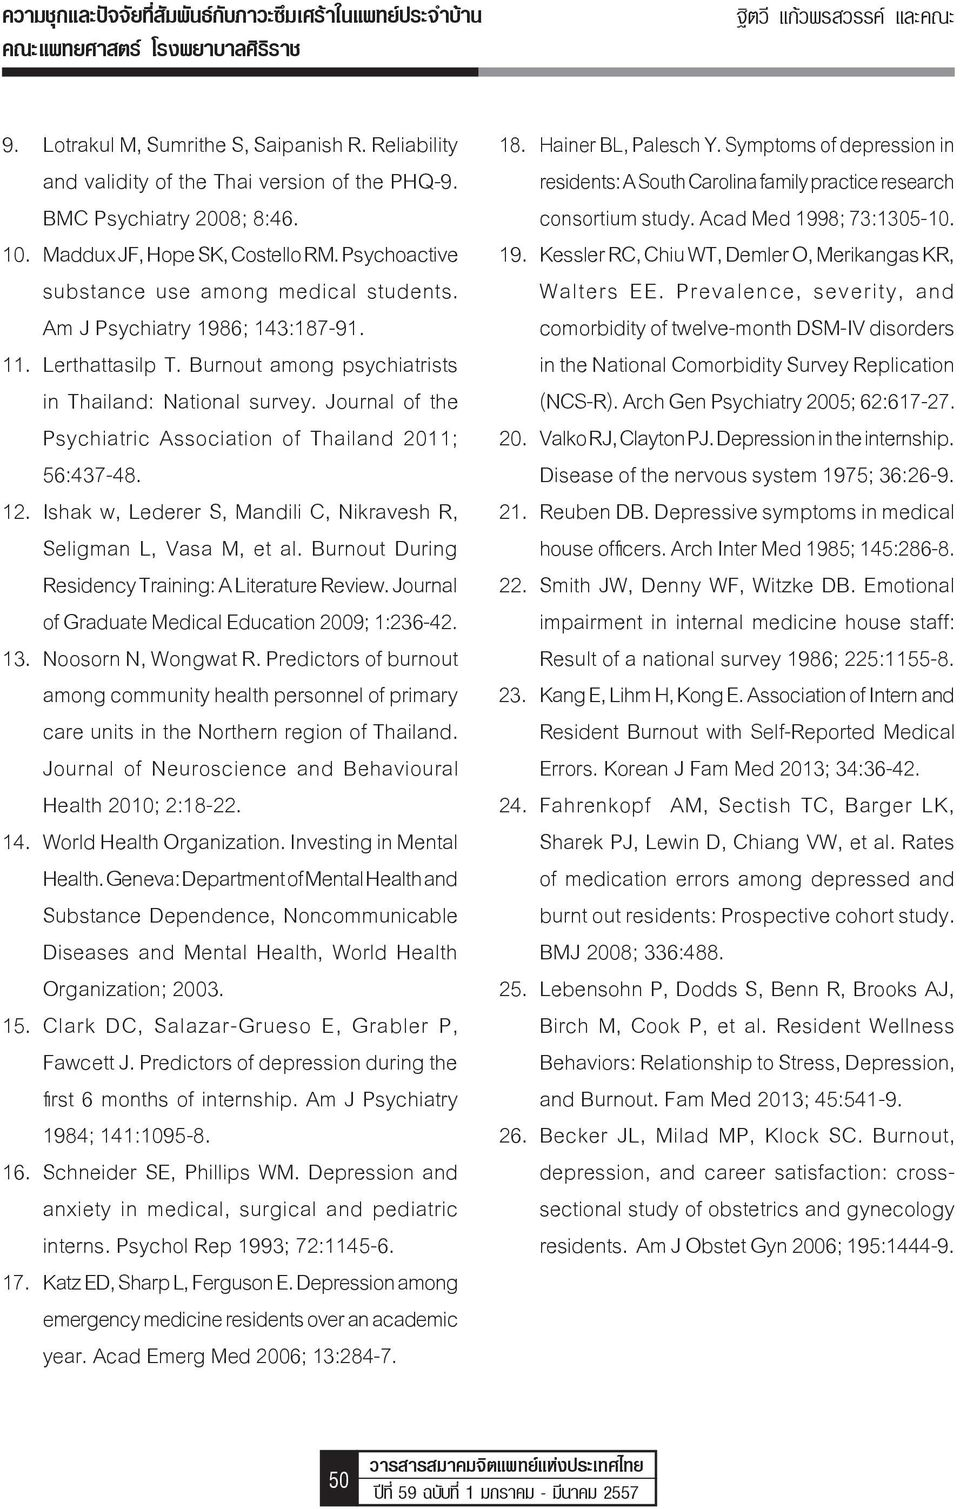 Am J Psychiatry 1986; 143:187-91. 11. Lerthattasilp T. Burnout among psychiatrists in Thailand: National survey. Journal of the Psychiatric Association of Thailand 2011; 56:437-48. 12.